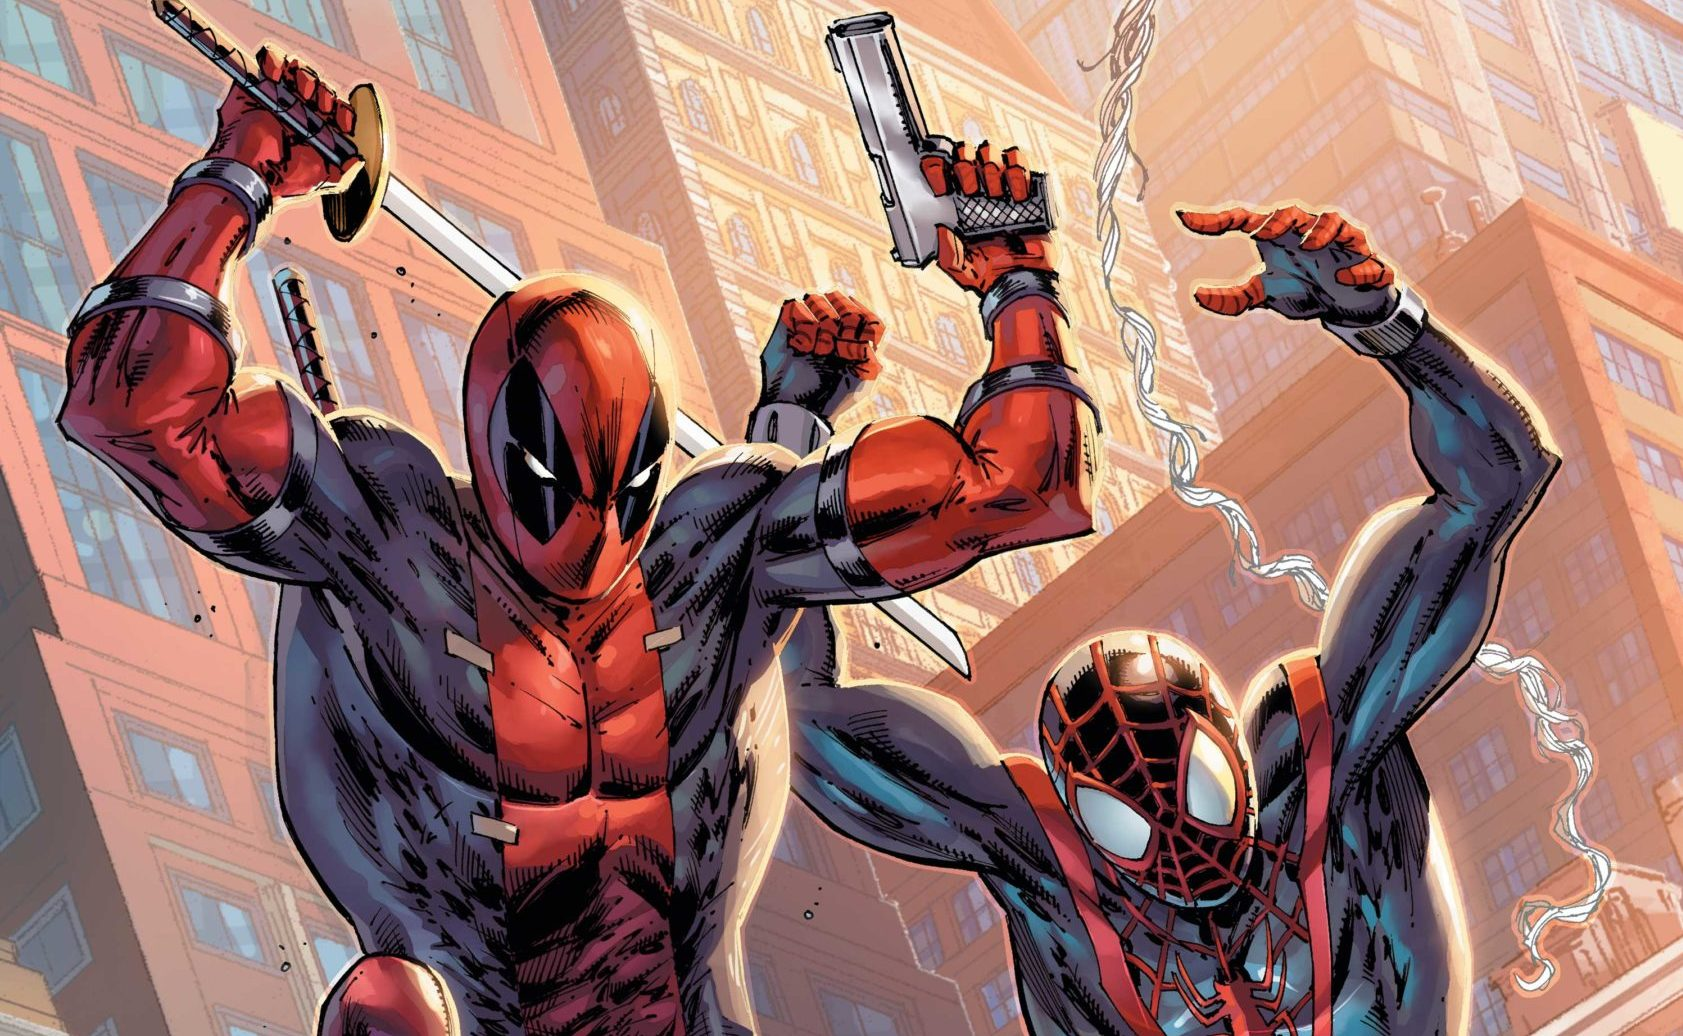 Celebrate Deadpool Entering His Dirty Thirties With Variant Covers!